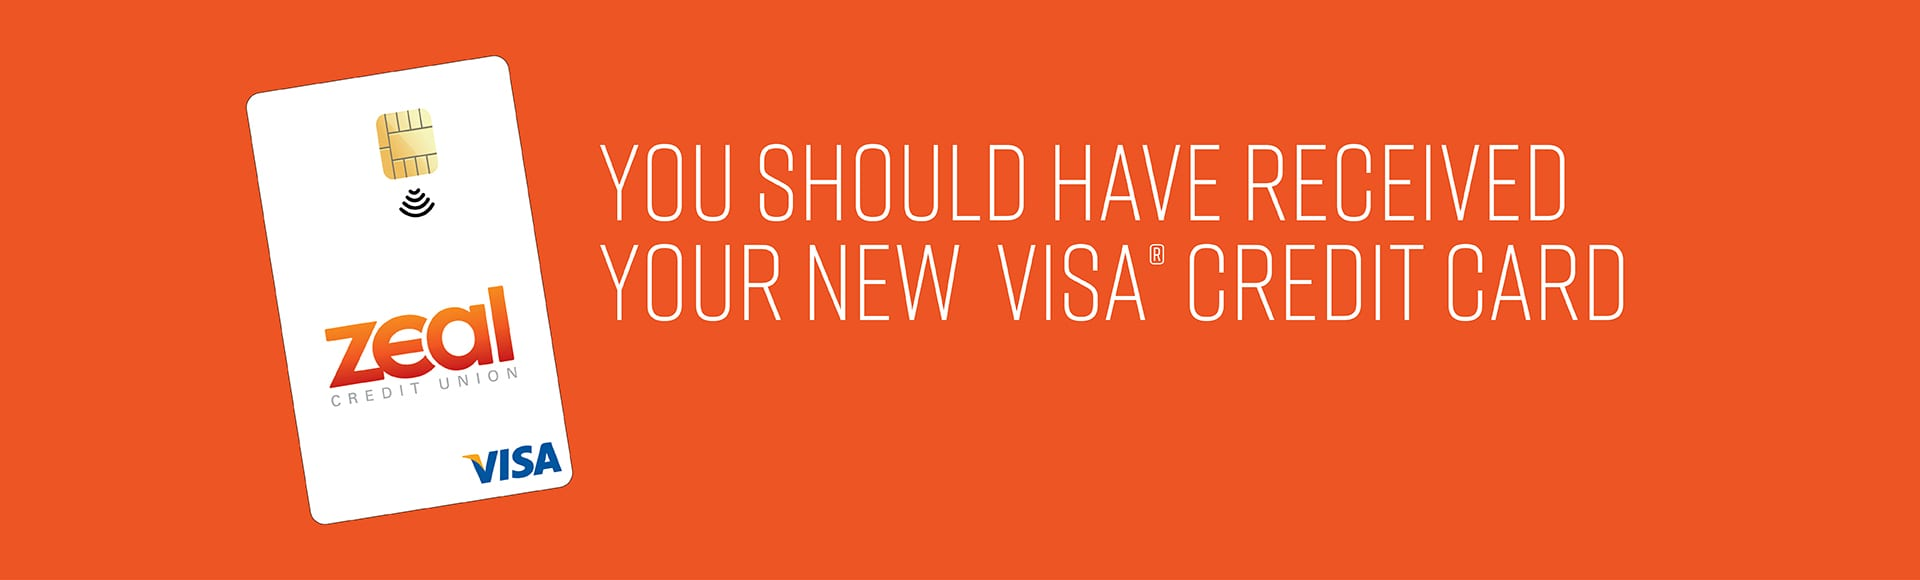 Your New Zeal Visa Credit Card is Here!